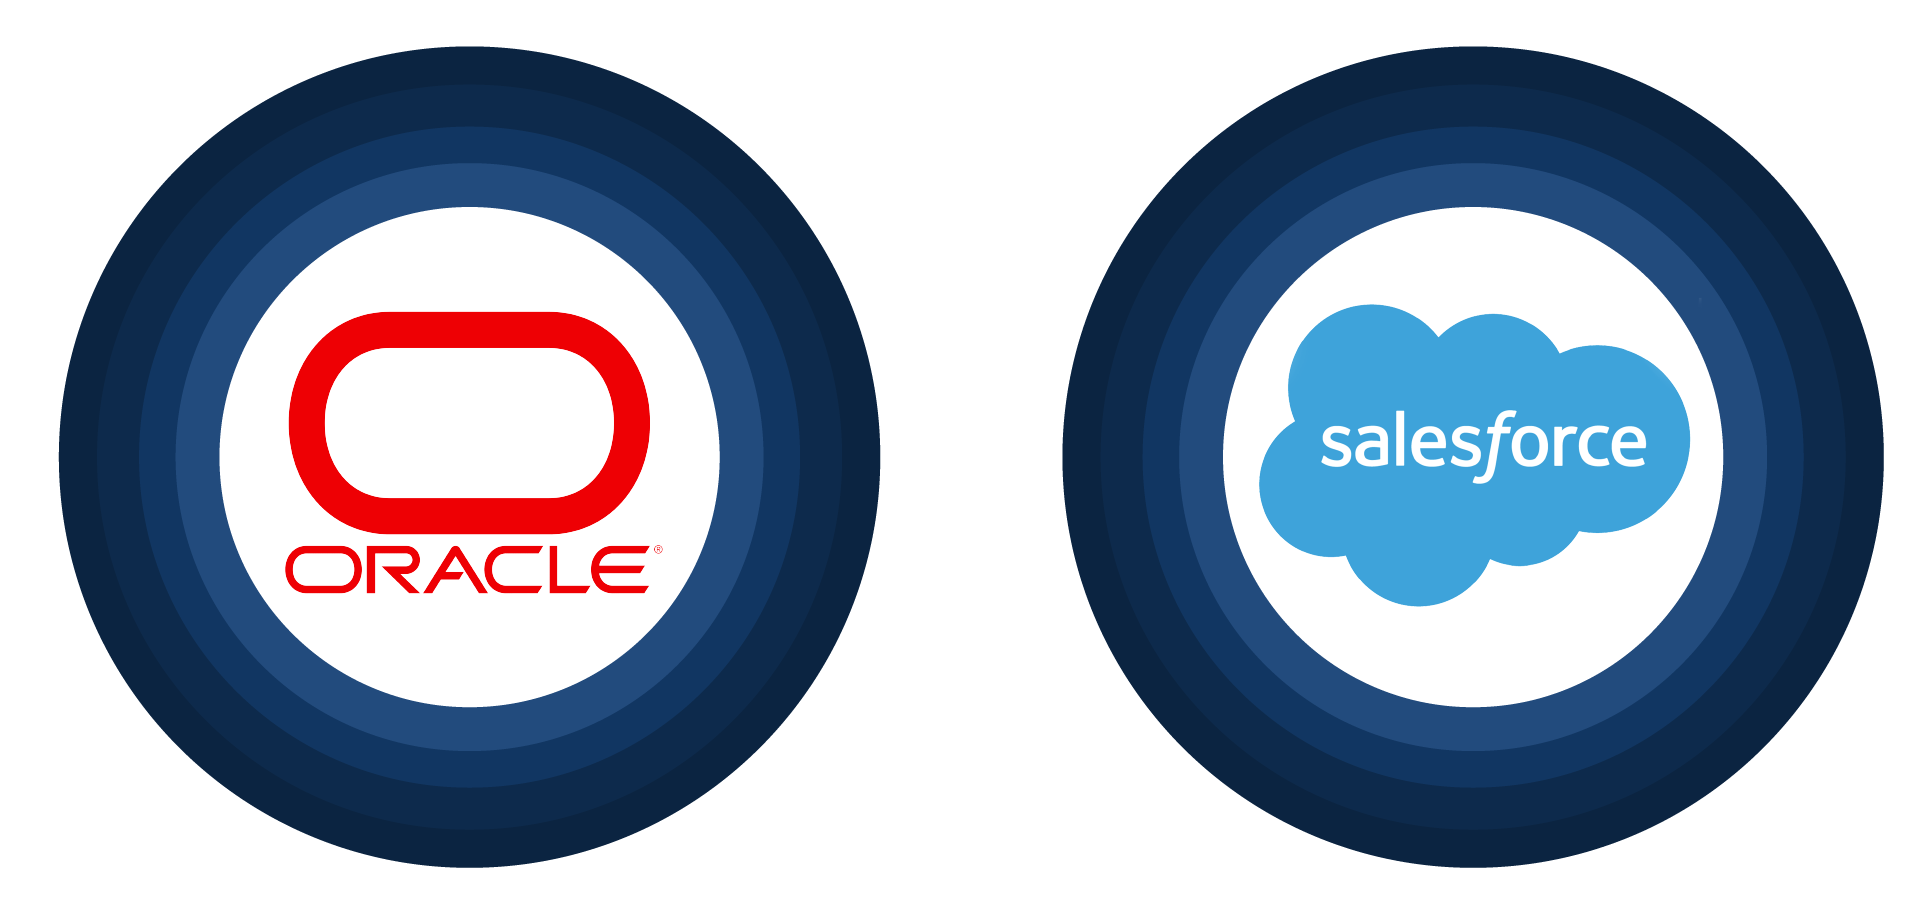 Product_Oracle-Salesforce_V1-01